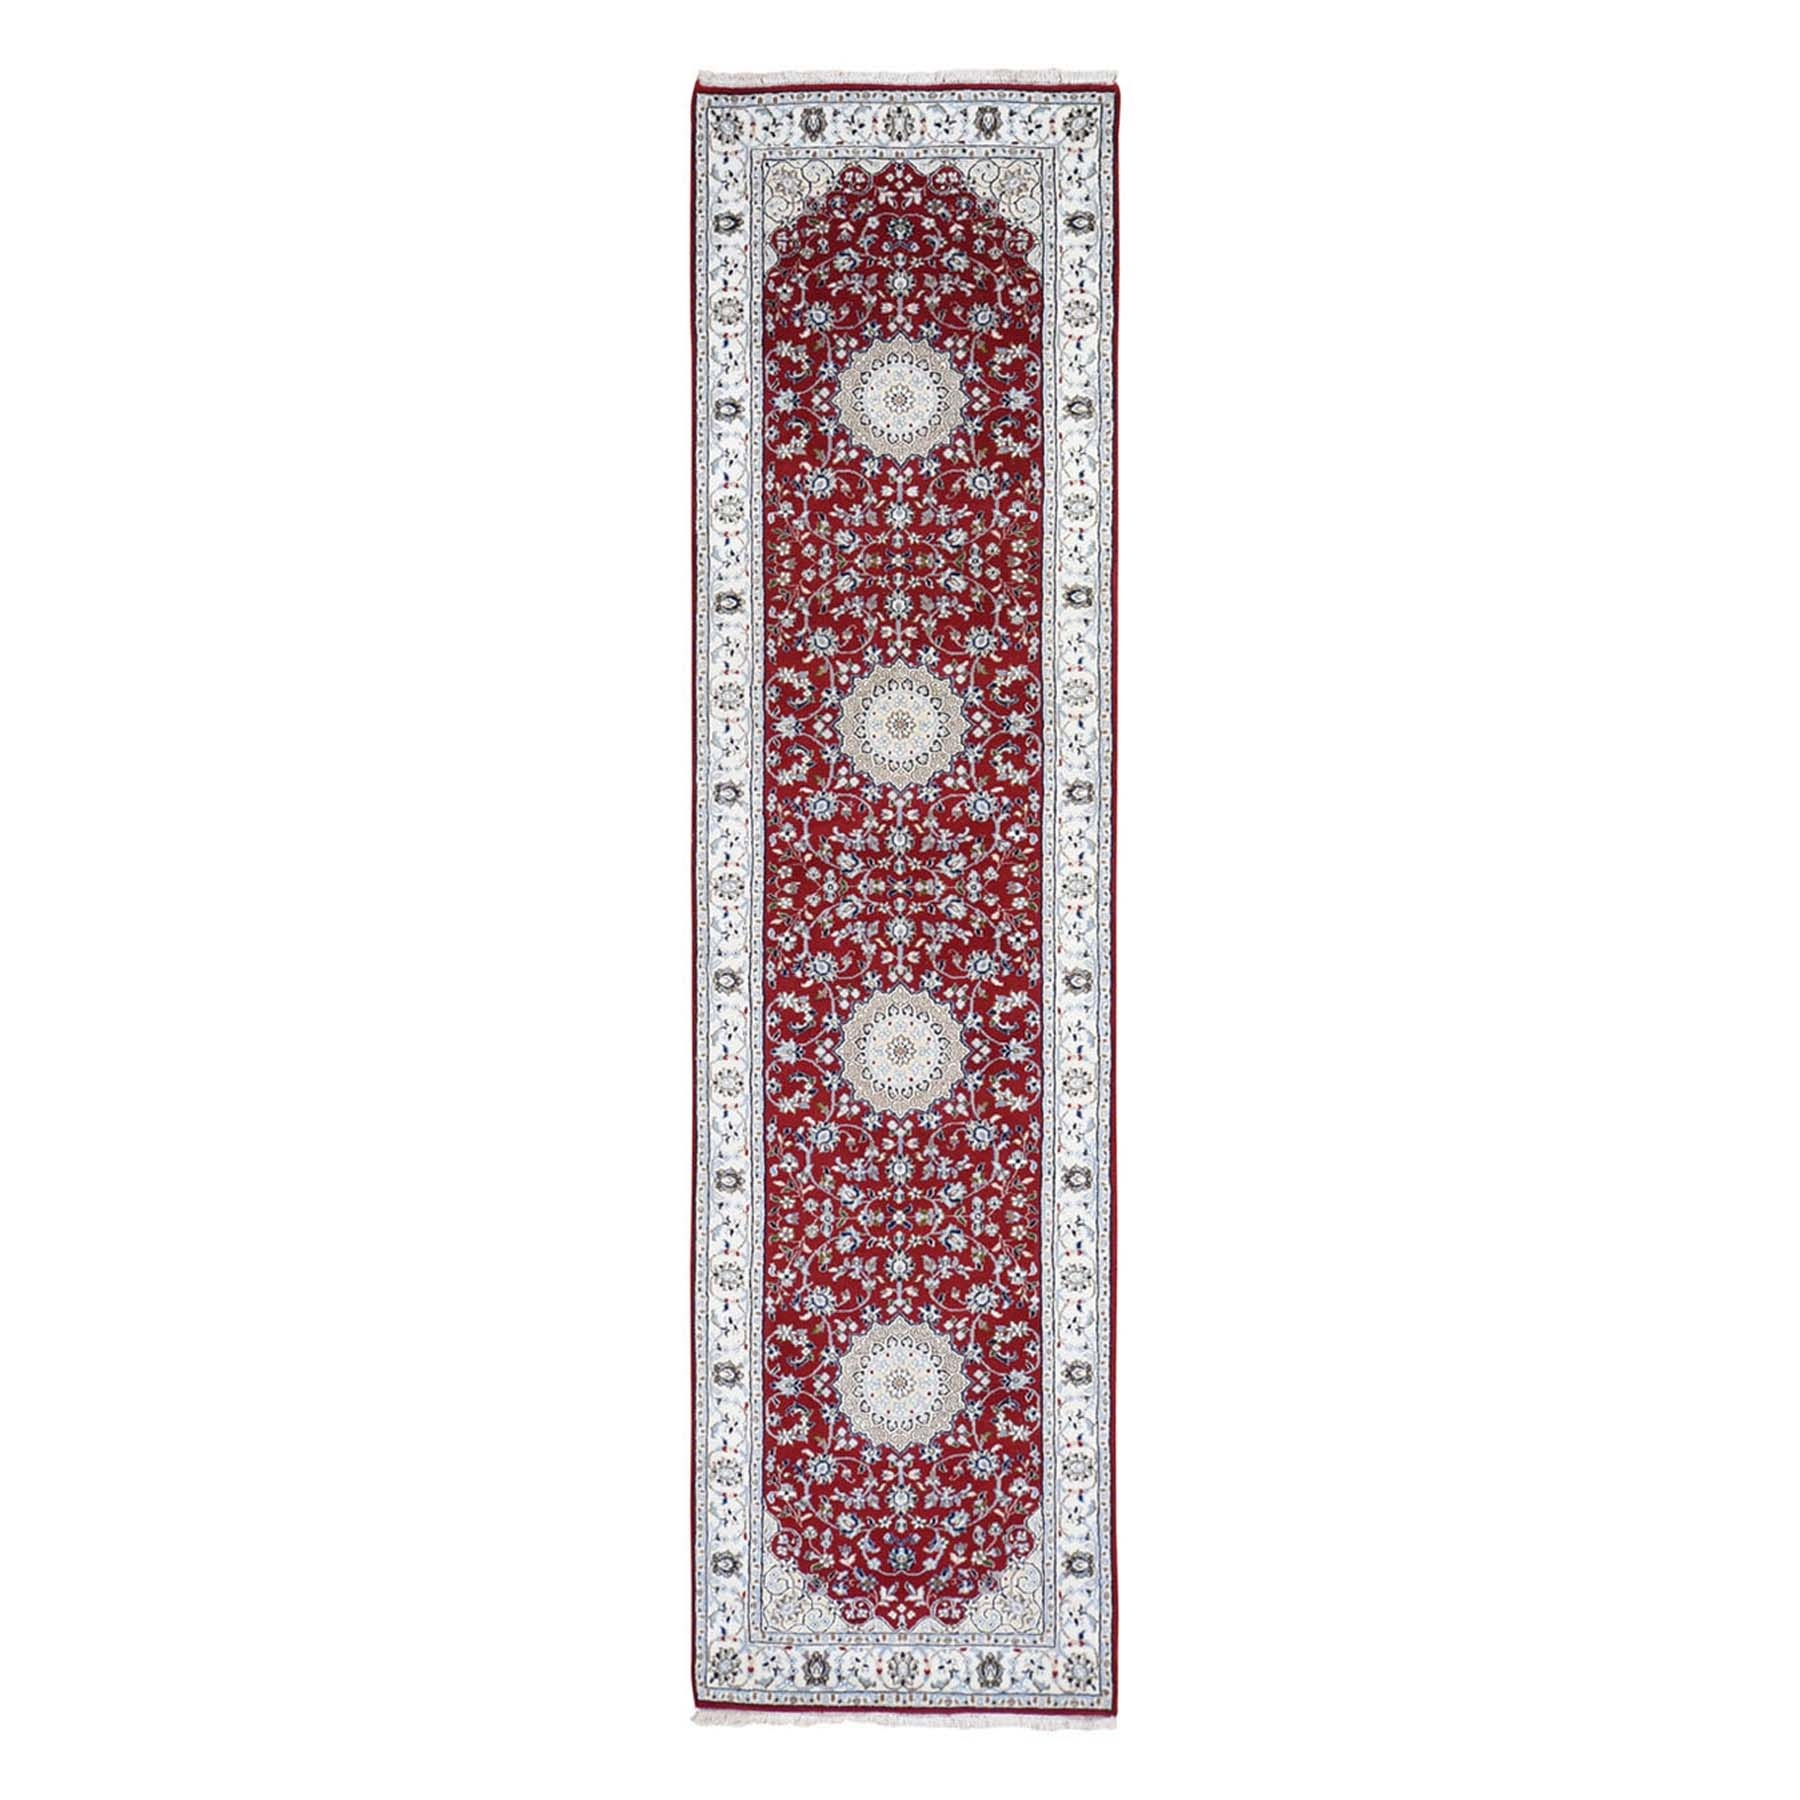 "2'9""x10' Wool And Silk 250 KPSI Red Nain Hand-Knotted Oriental Runner Rug"